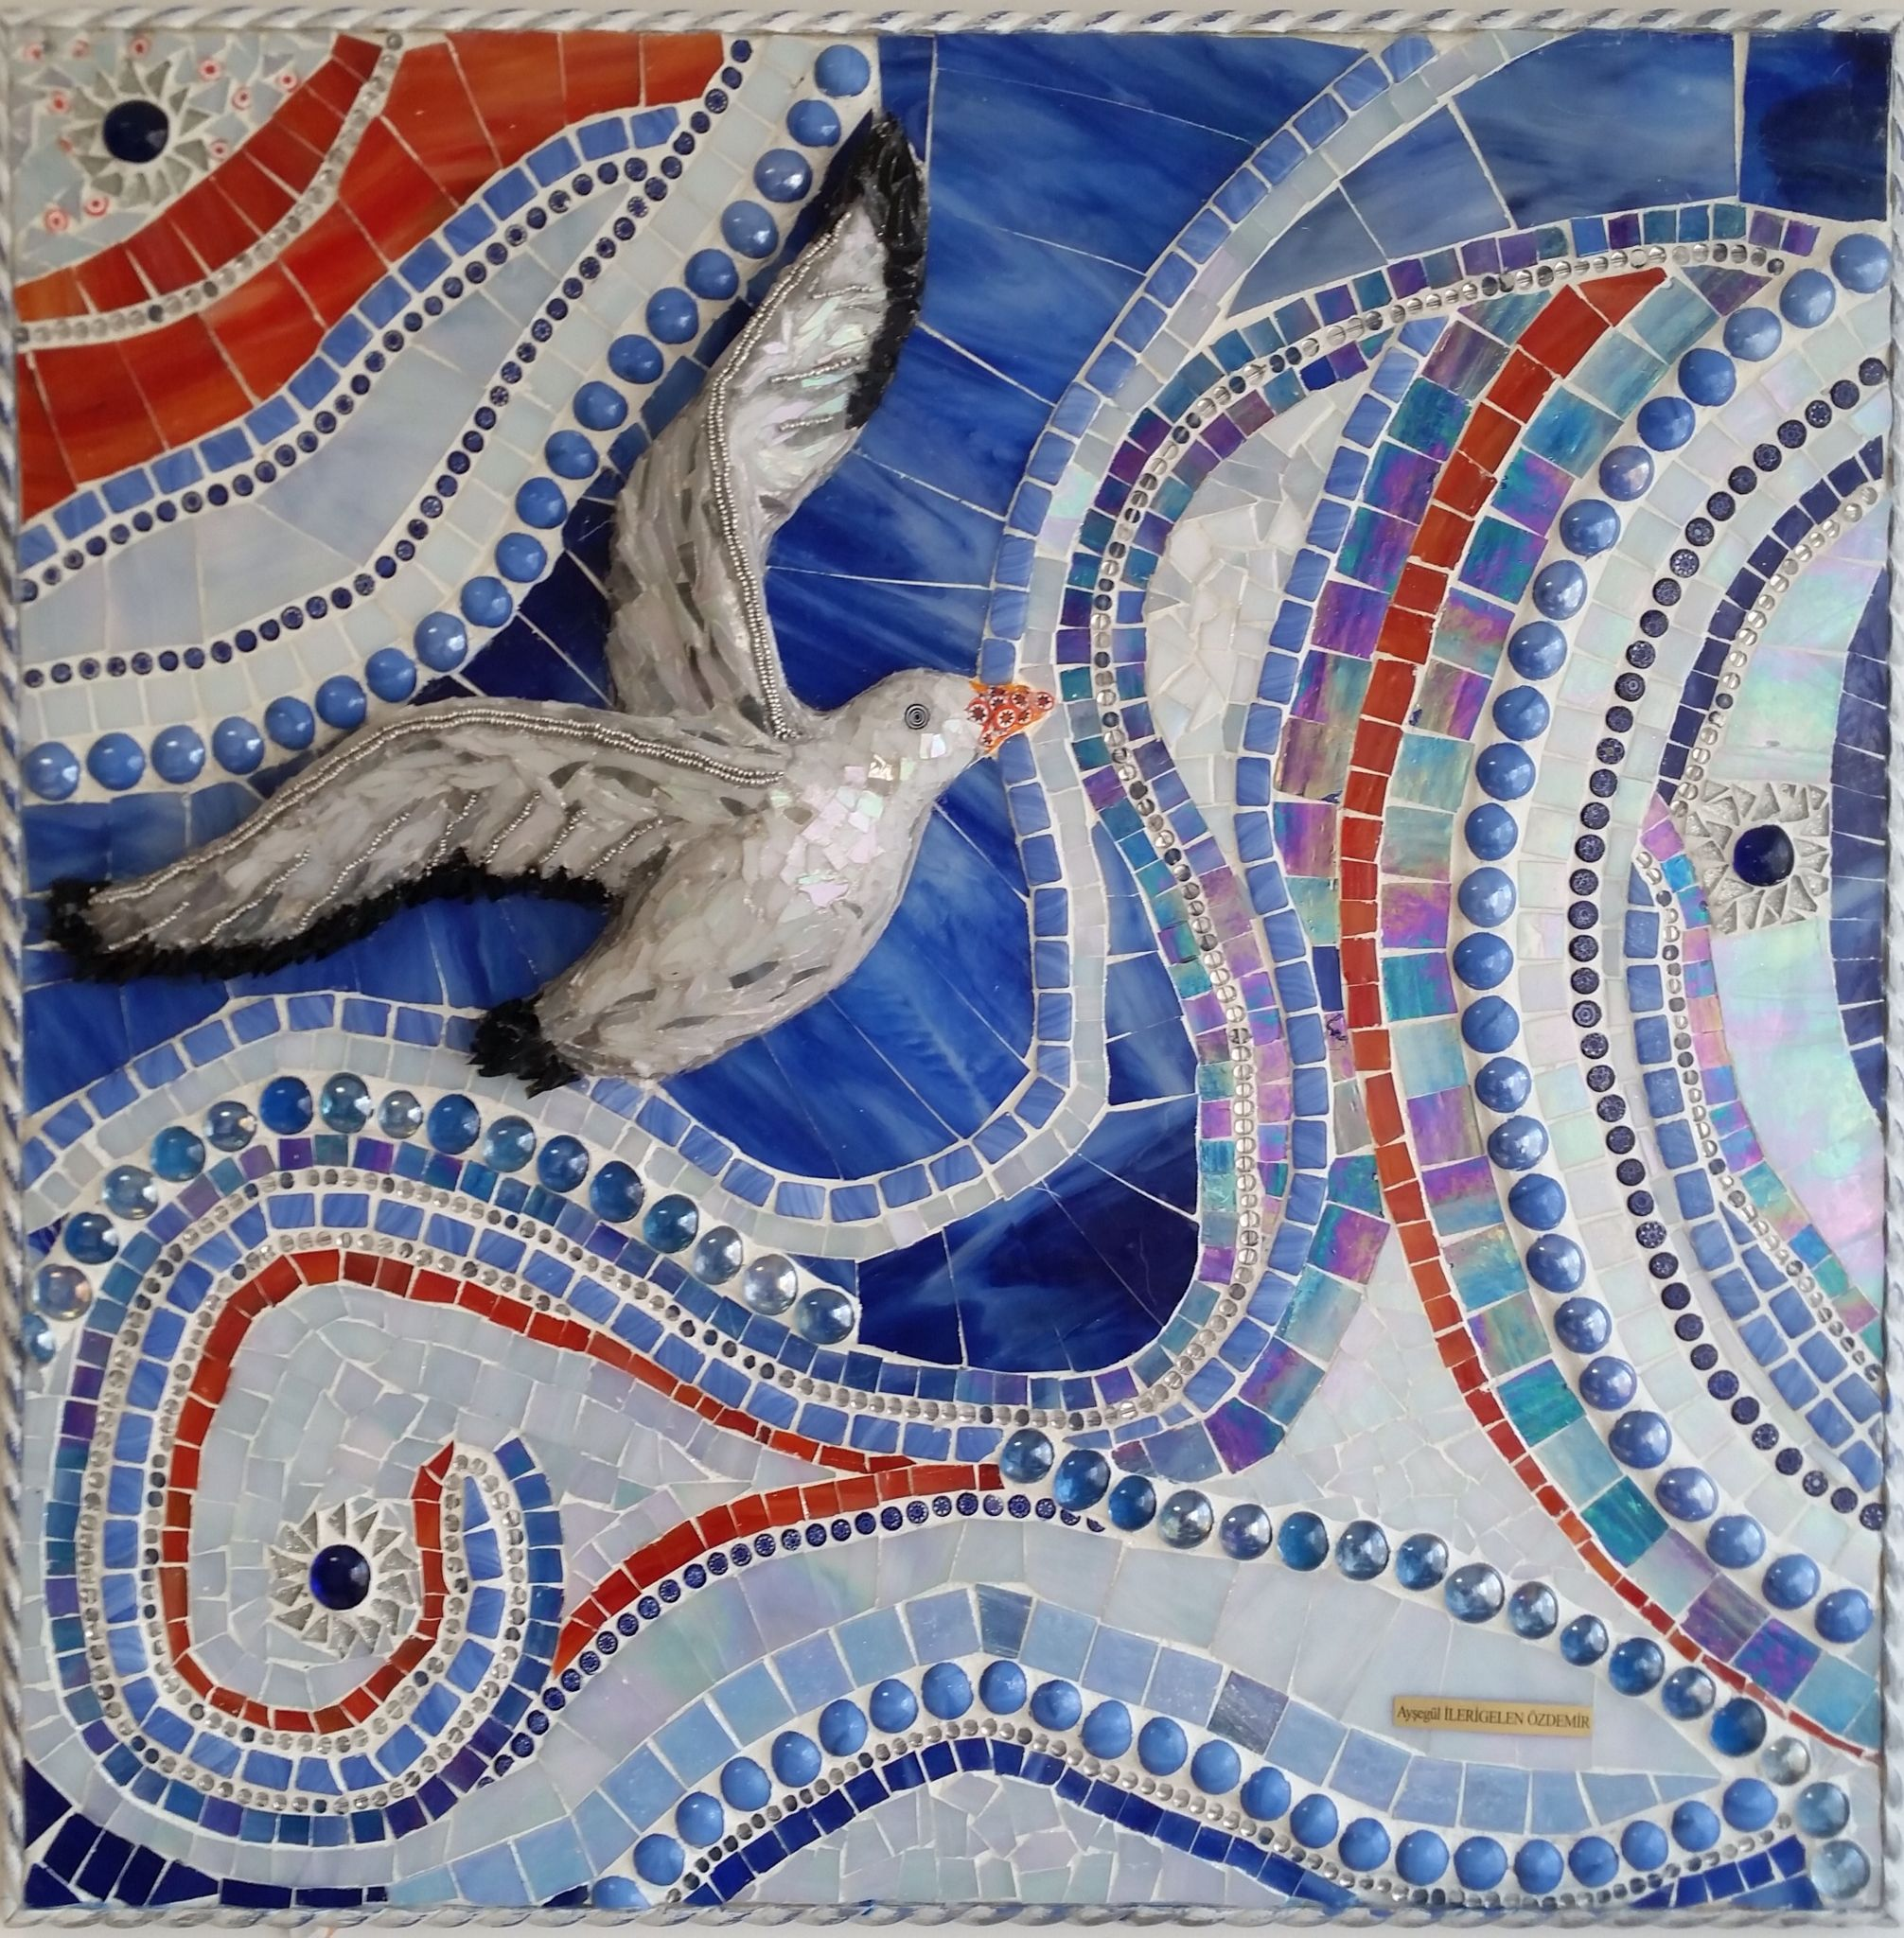 My mosaic work 55*55